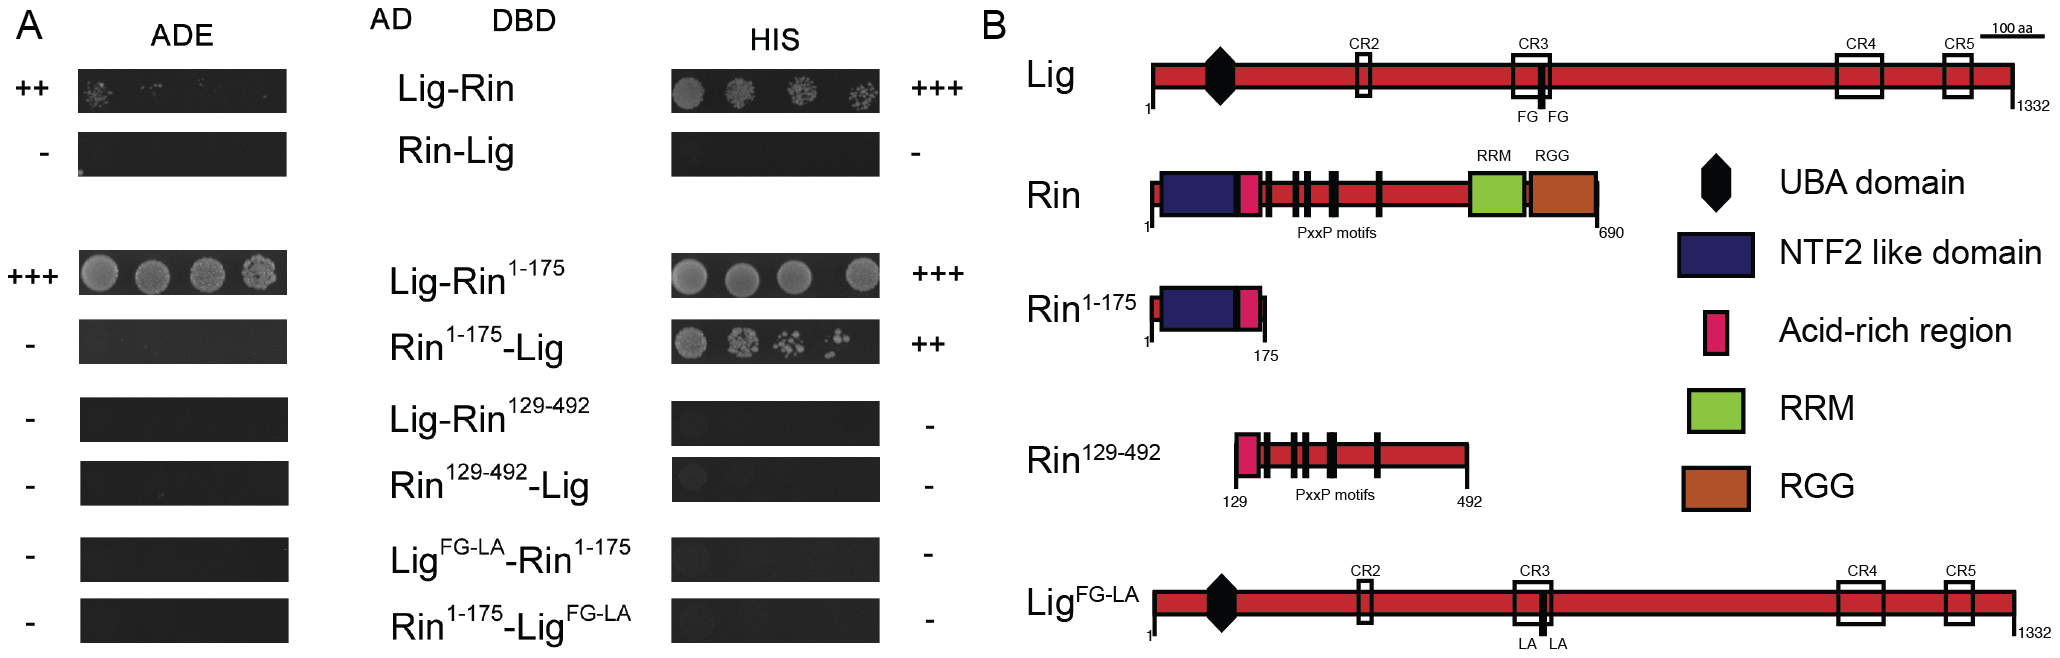 Lig interacts with Rin in Y2H experiments.